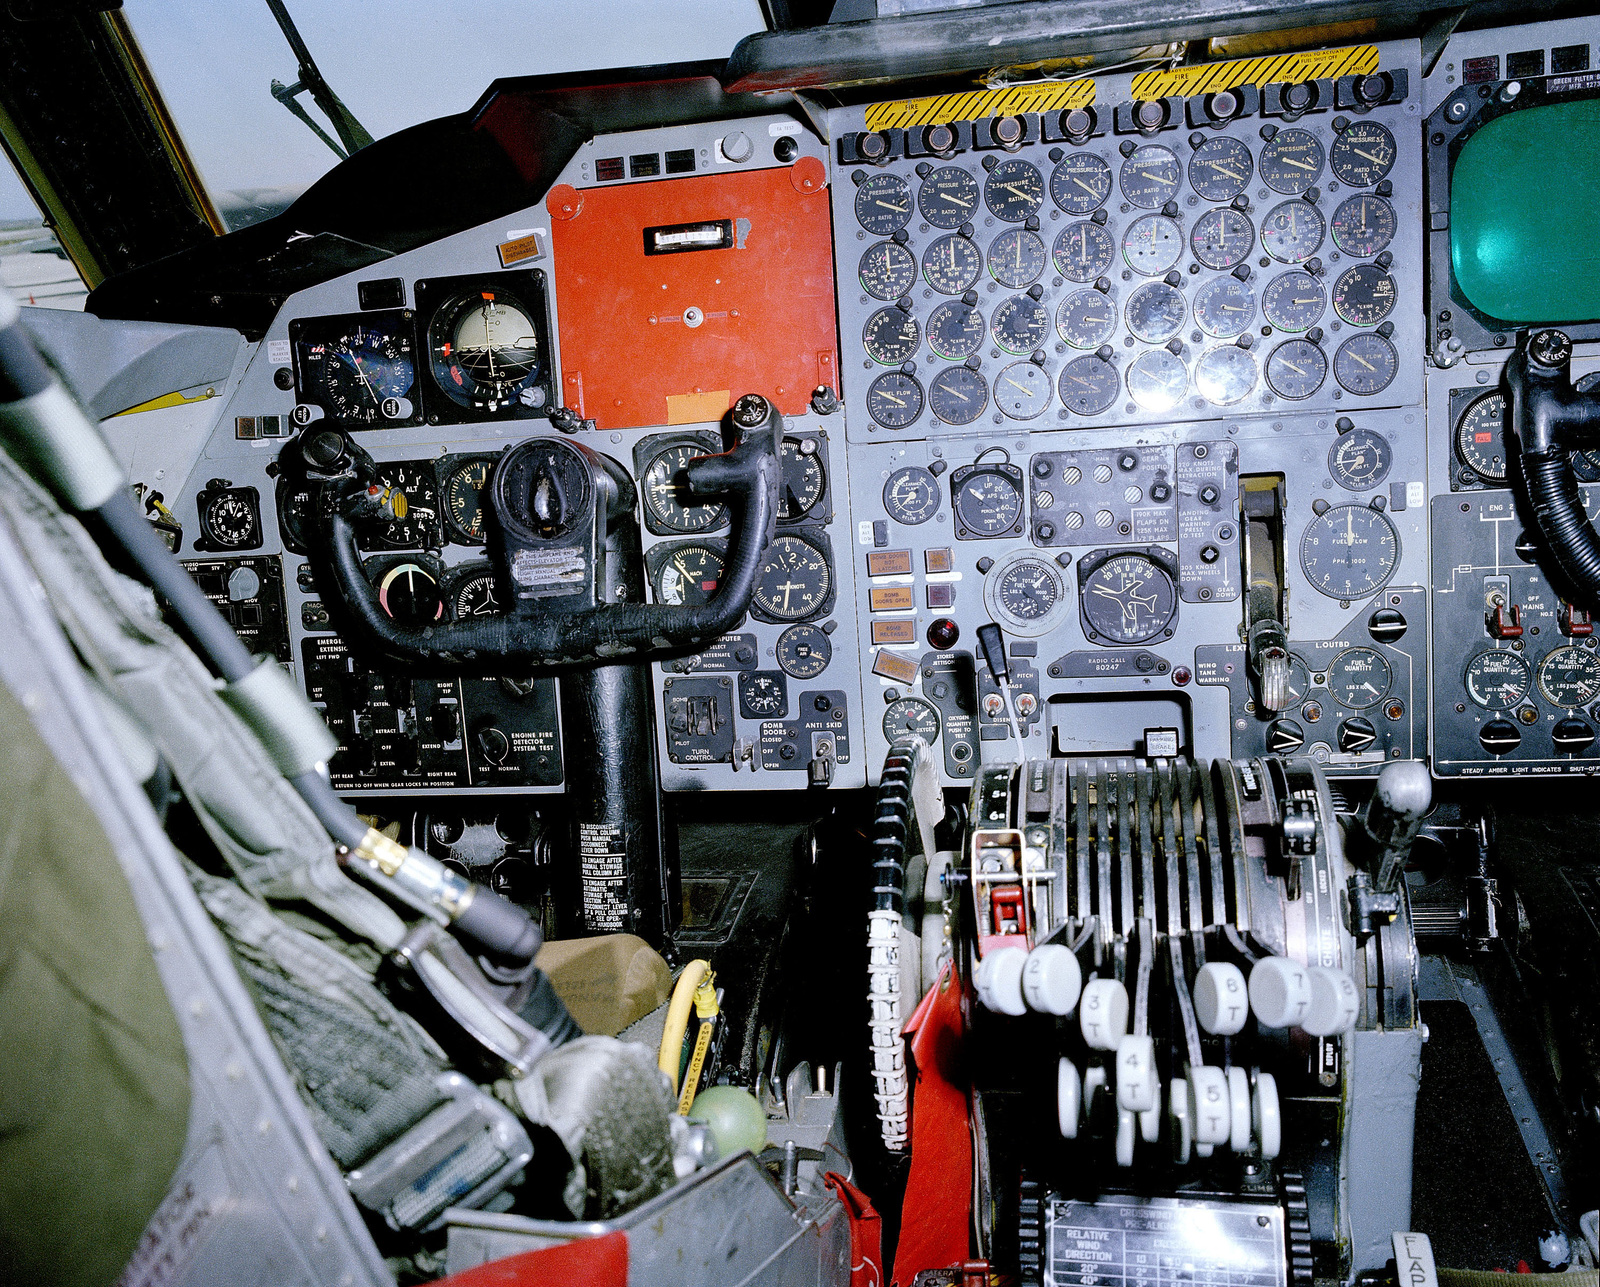 A close-up view of an instrument panel of a B-52 Stratofortress